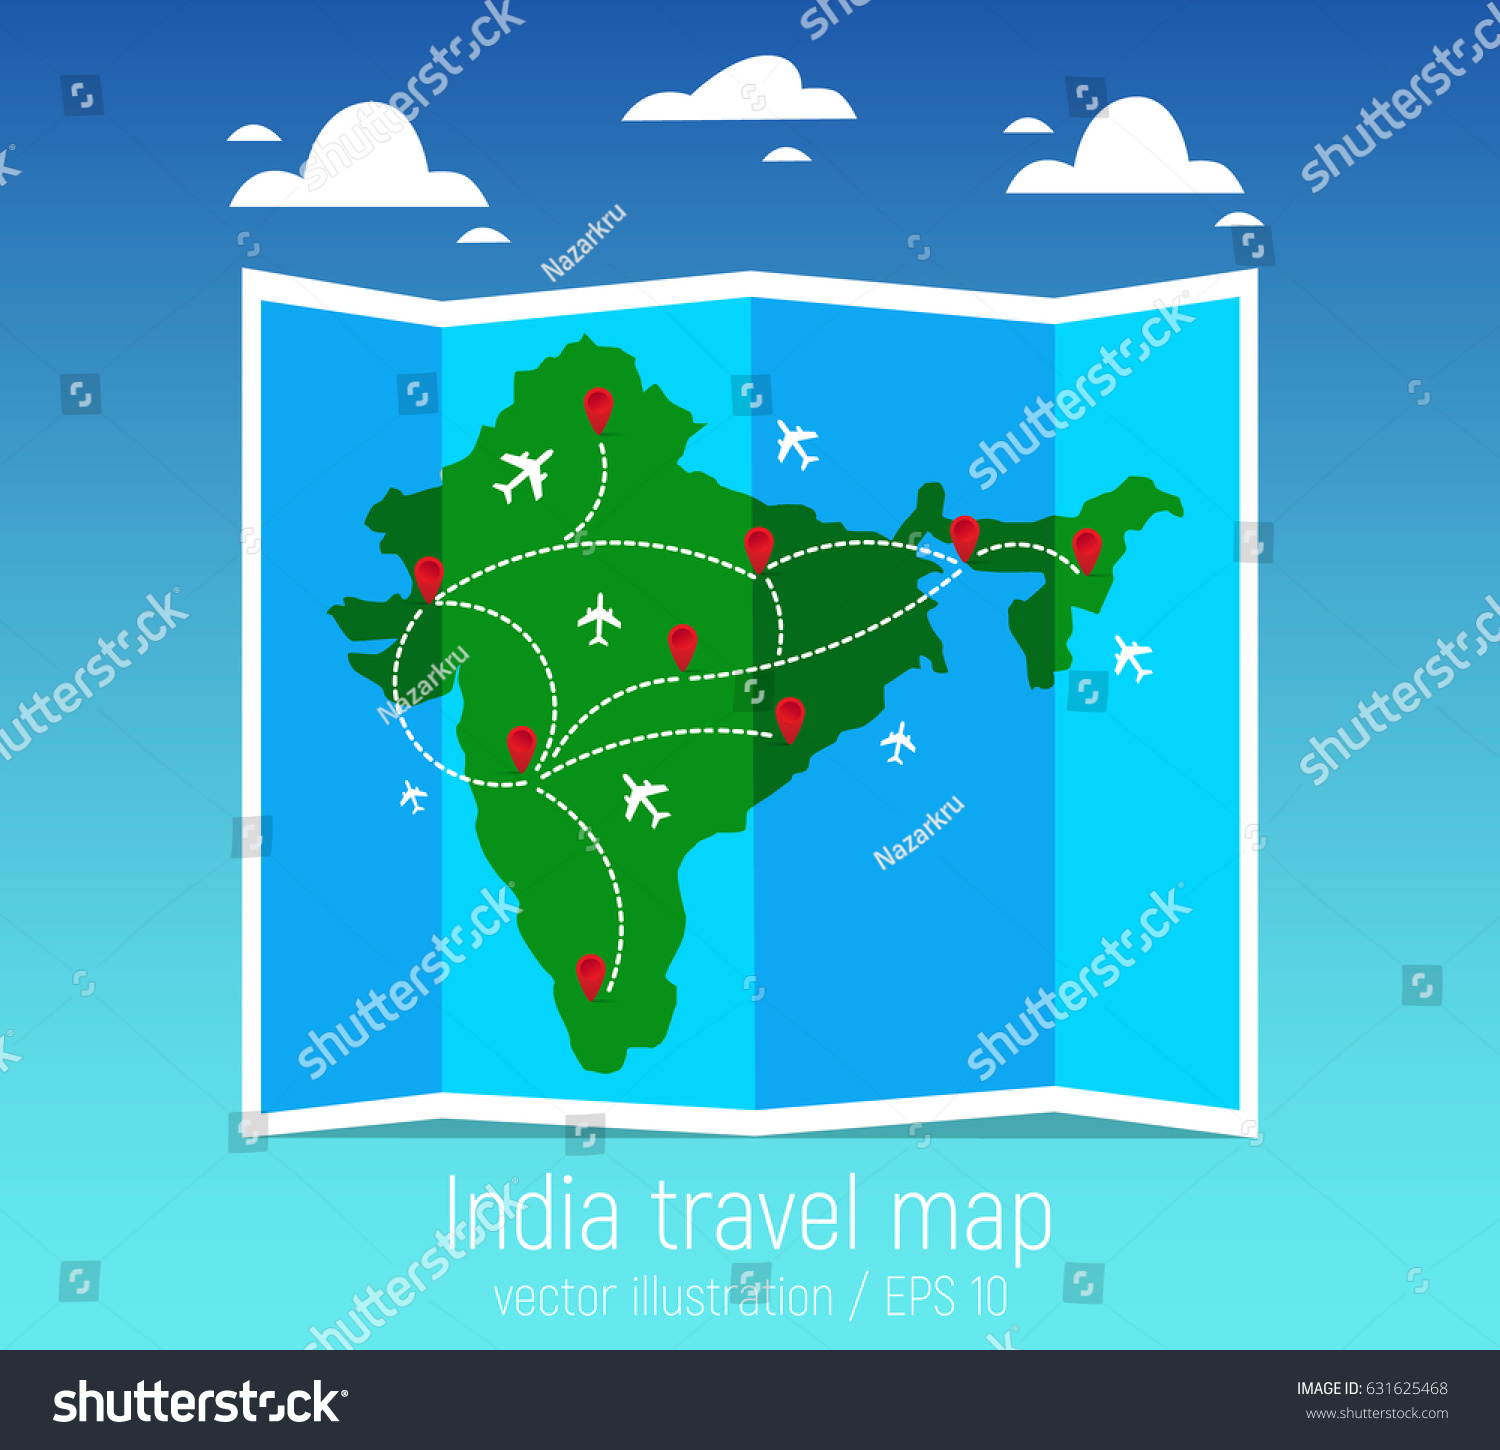 Travel tourism map indian folded world stock vector 2018 631625468 travel and tourism map indian folded world map with airplanes and markers vector illustration gumiabroncs Images